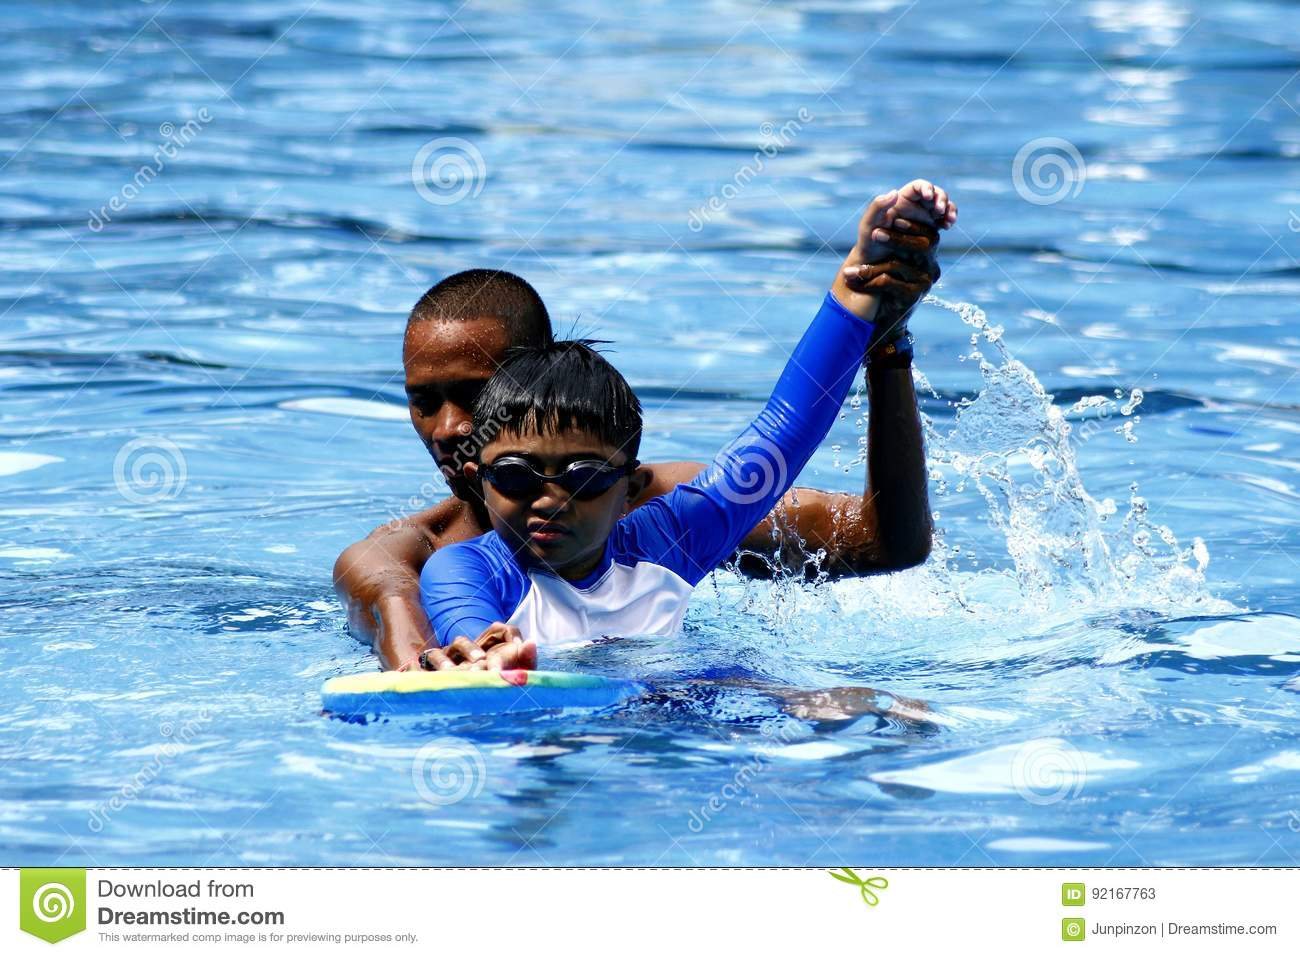 A kid learns how to swim with the help of a swimming coach.